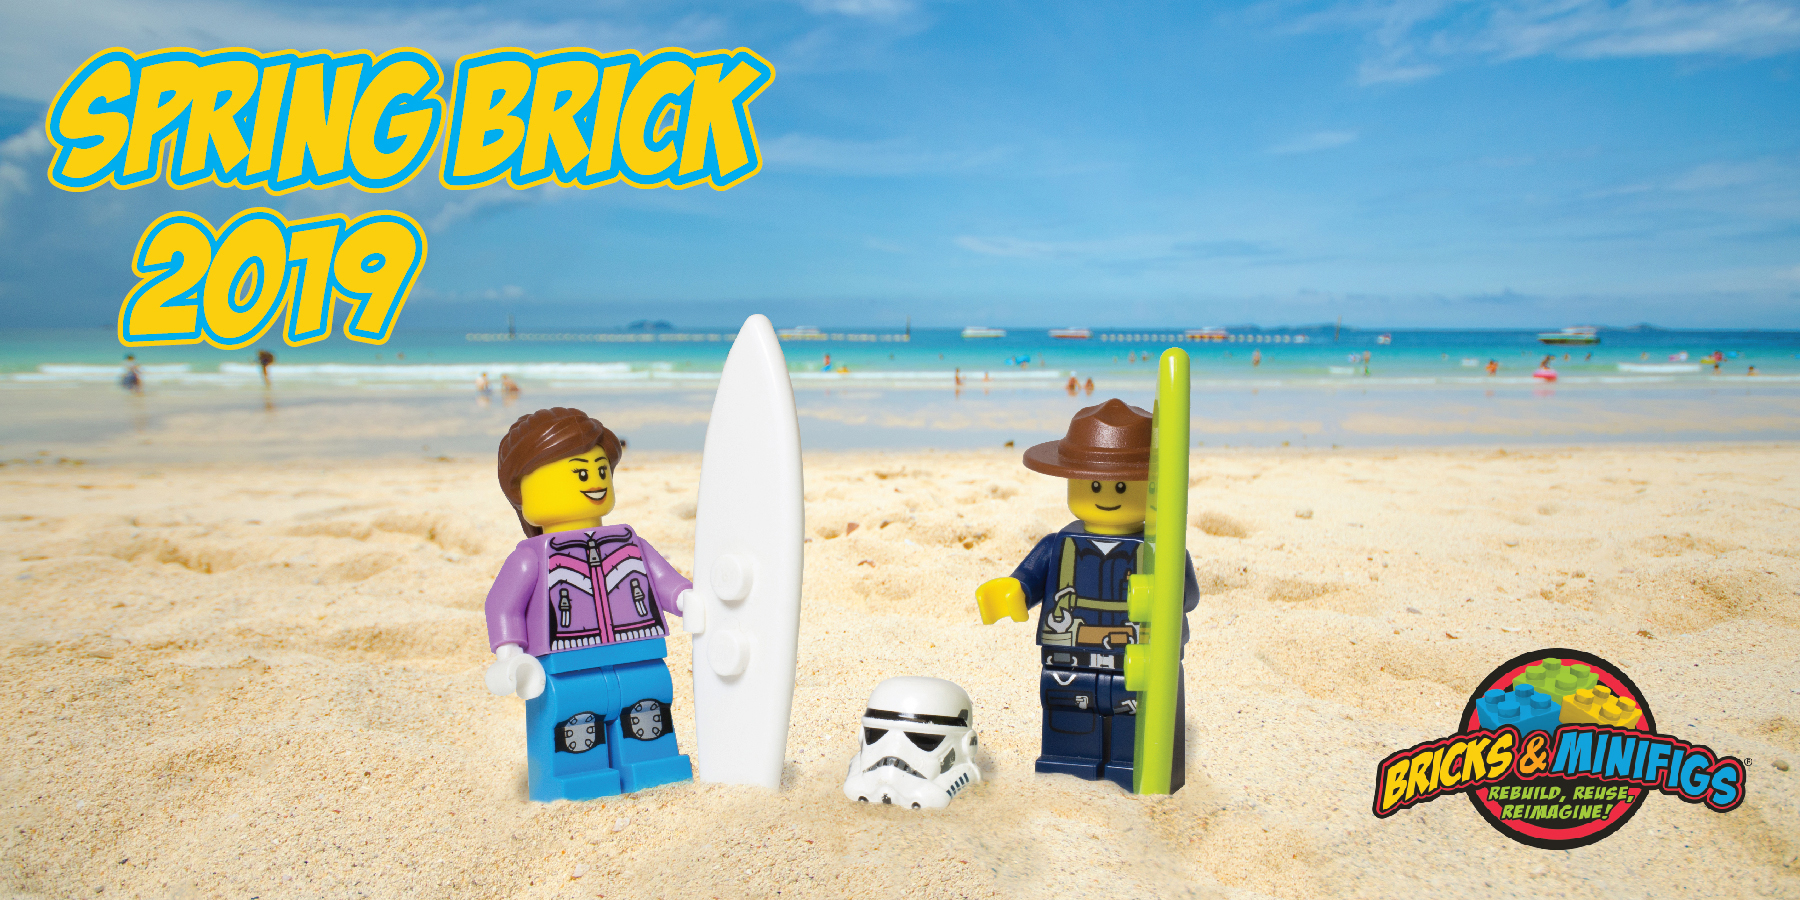 LEGO Contest | Spring Break 2019 | Submit your creation today!